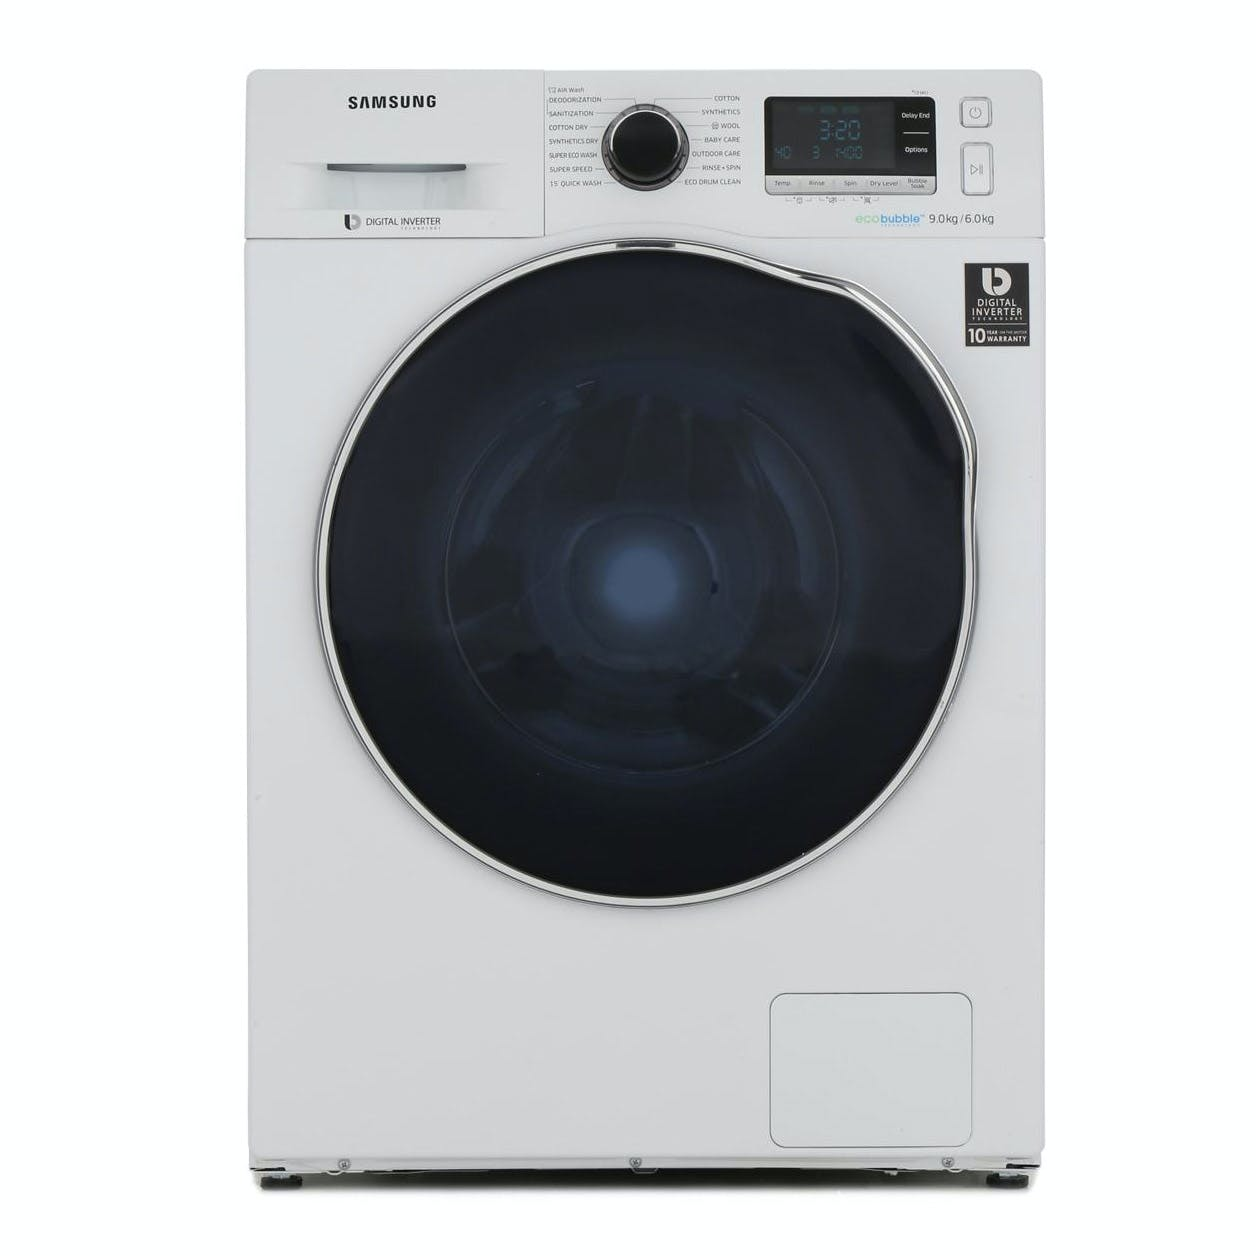 Samsung wd90j6a10aw eco bubble washer dryer in white - Samsung eco bubble ...